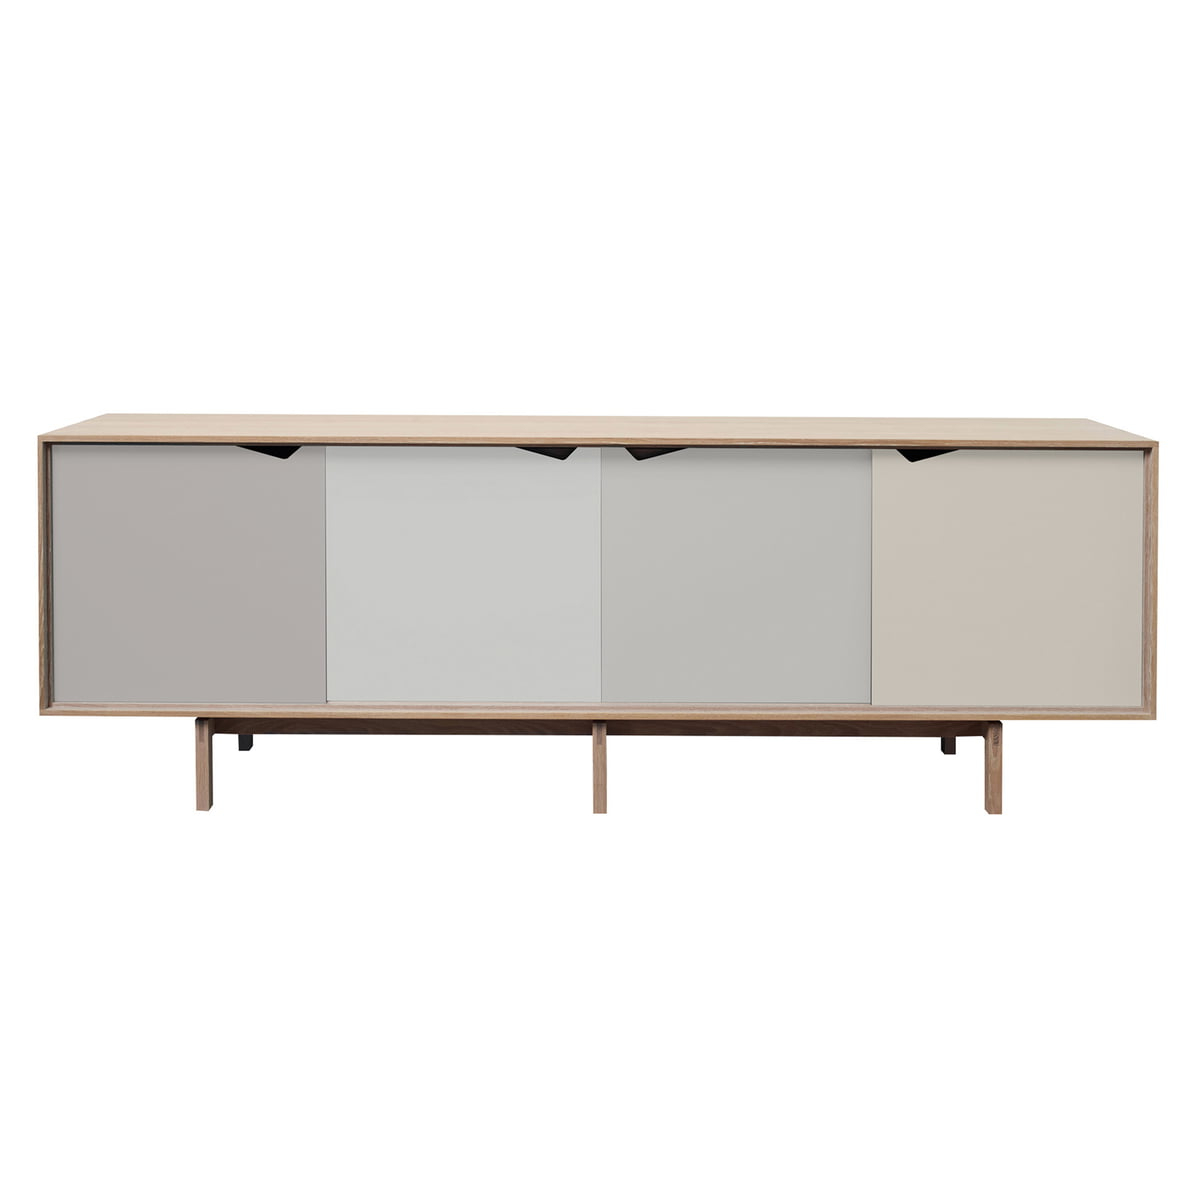 Well Known S1 Sideboard Multicoloured Andersen Furniture Intended For Iron Sideboards (View 19 of 20)